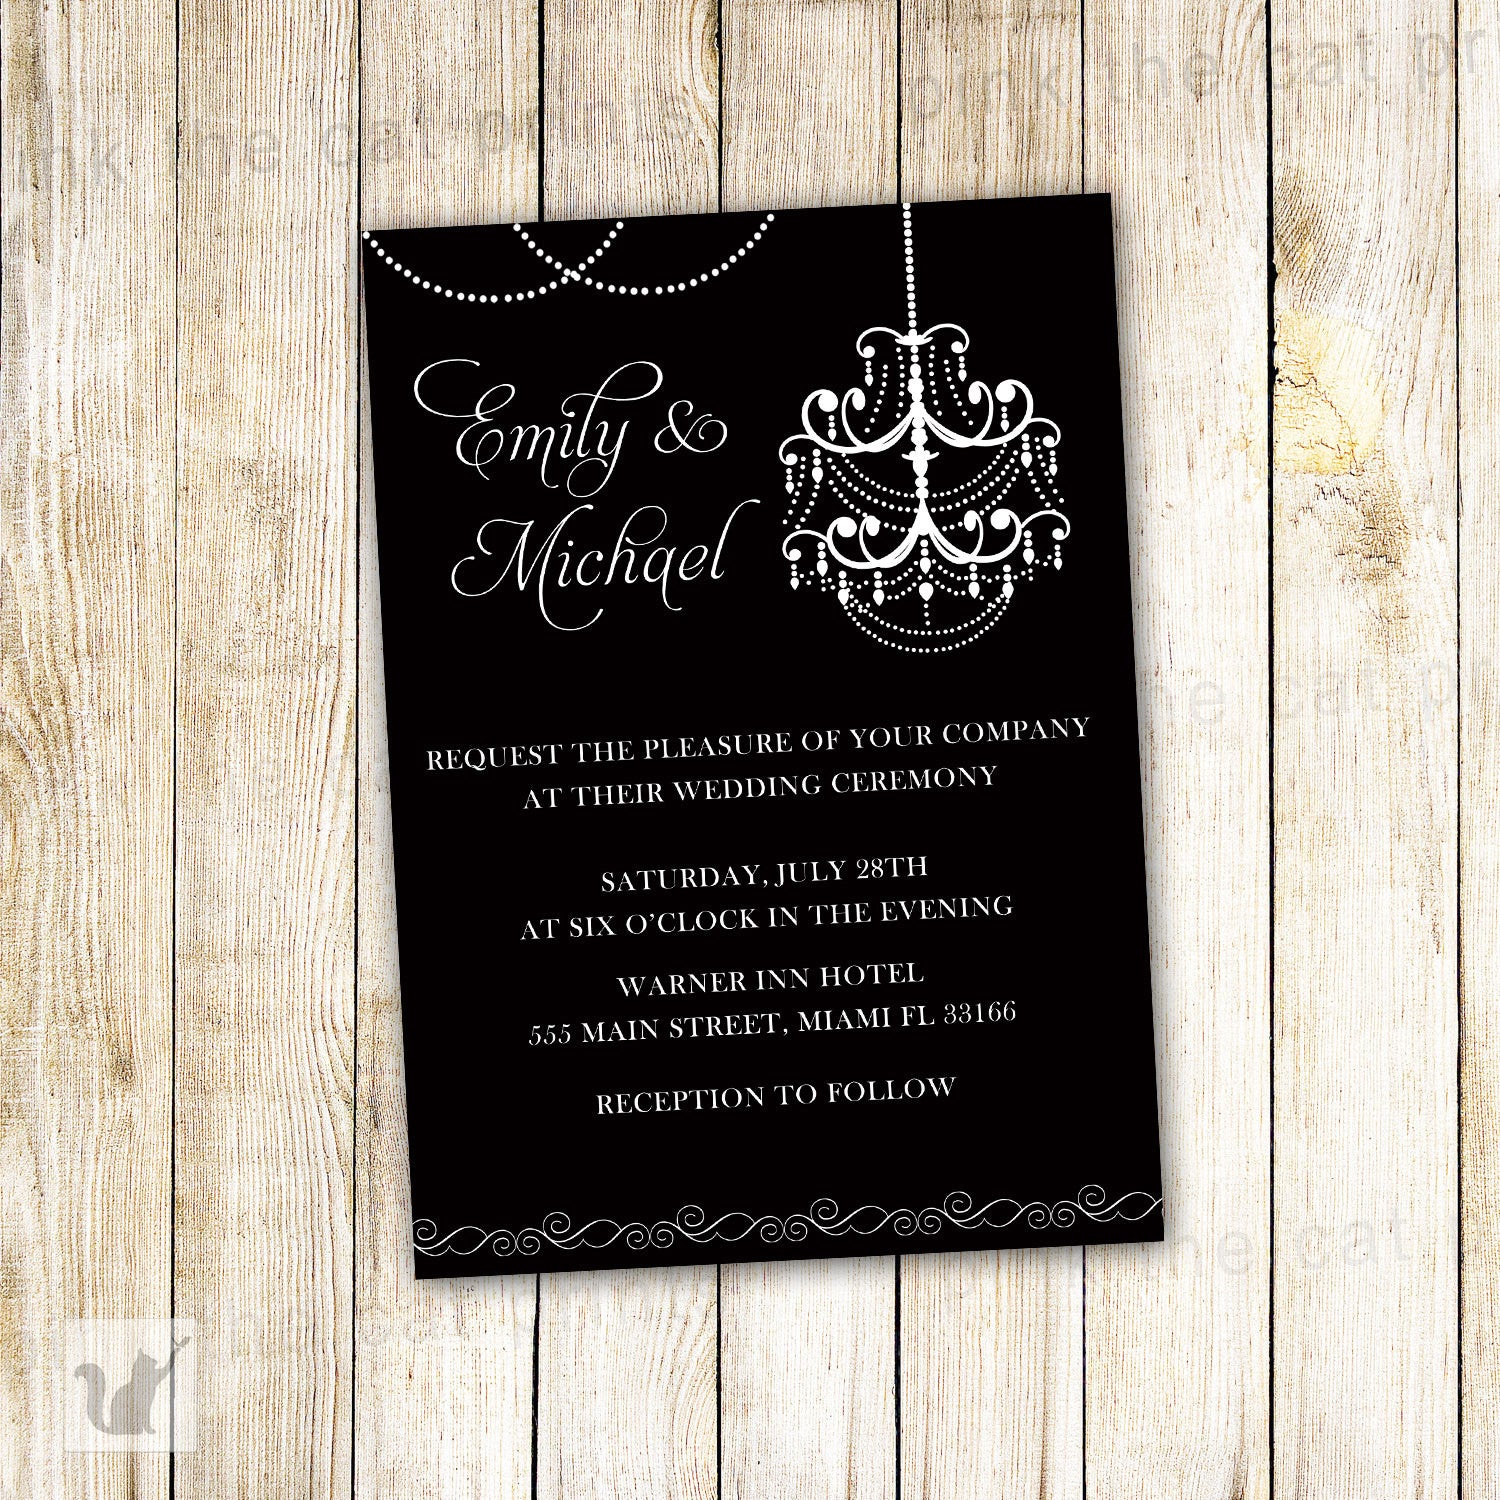 Chandelier Wedding Invitation Black White Gothic Style – Pink The Cat